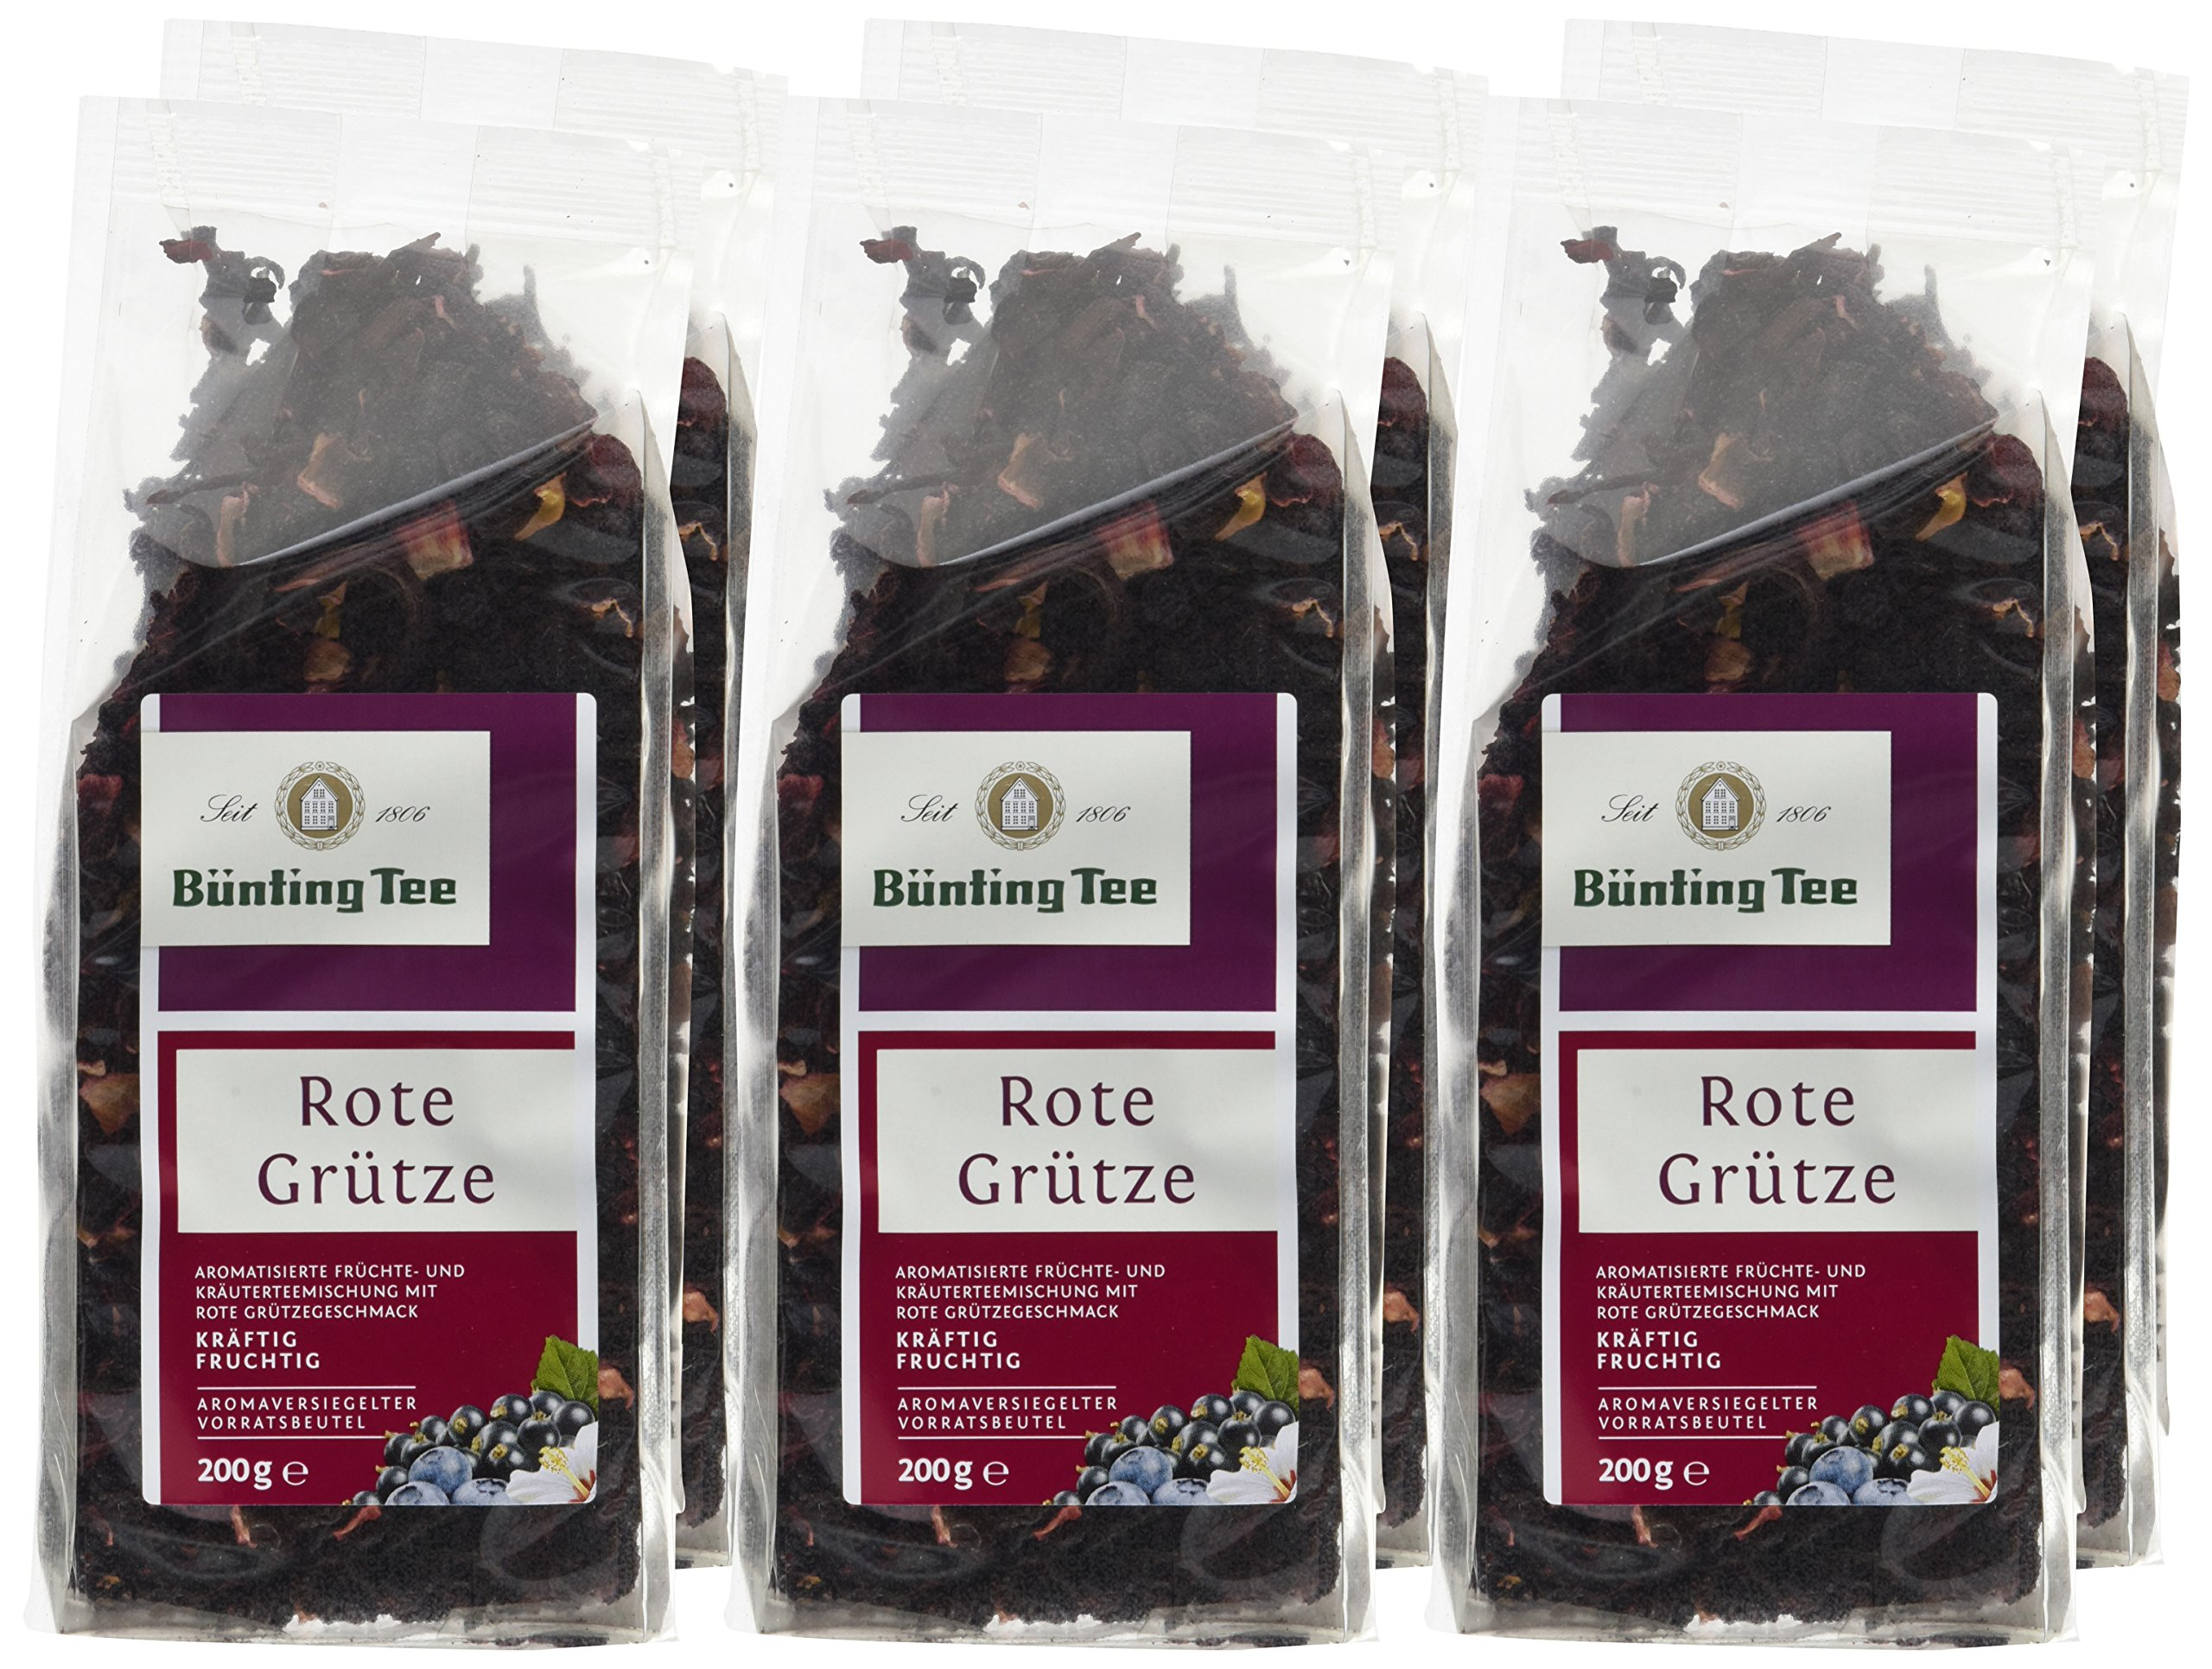 Bnting-Tee-Rote-Grtze-200-g-lose-6er-Pack-6-x-200-g